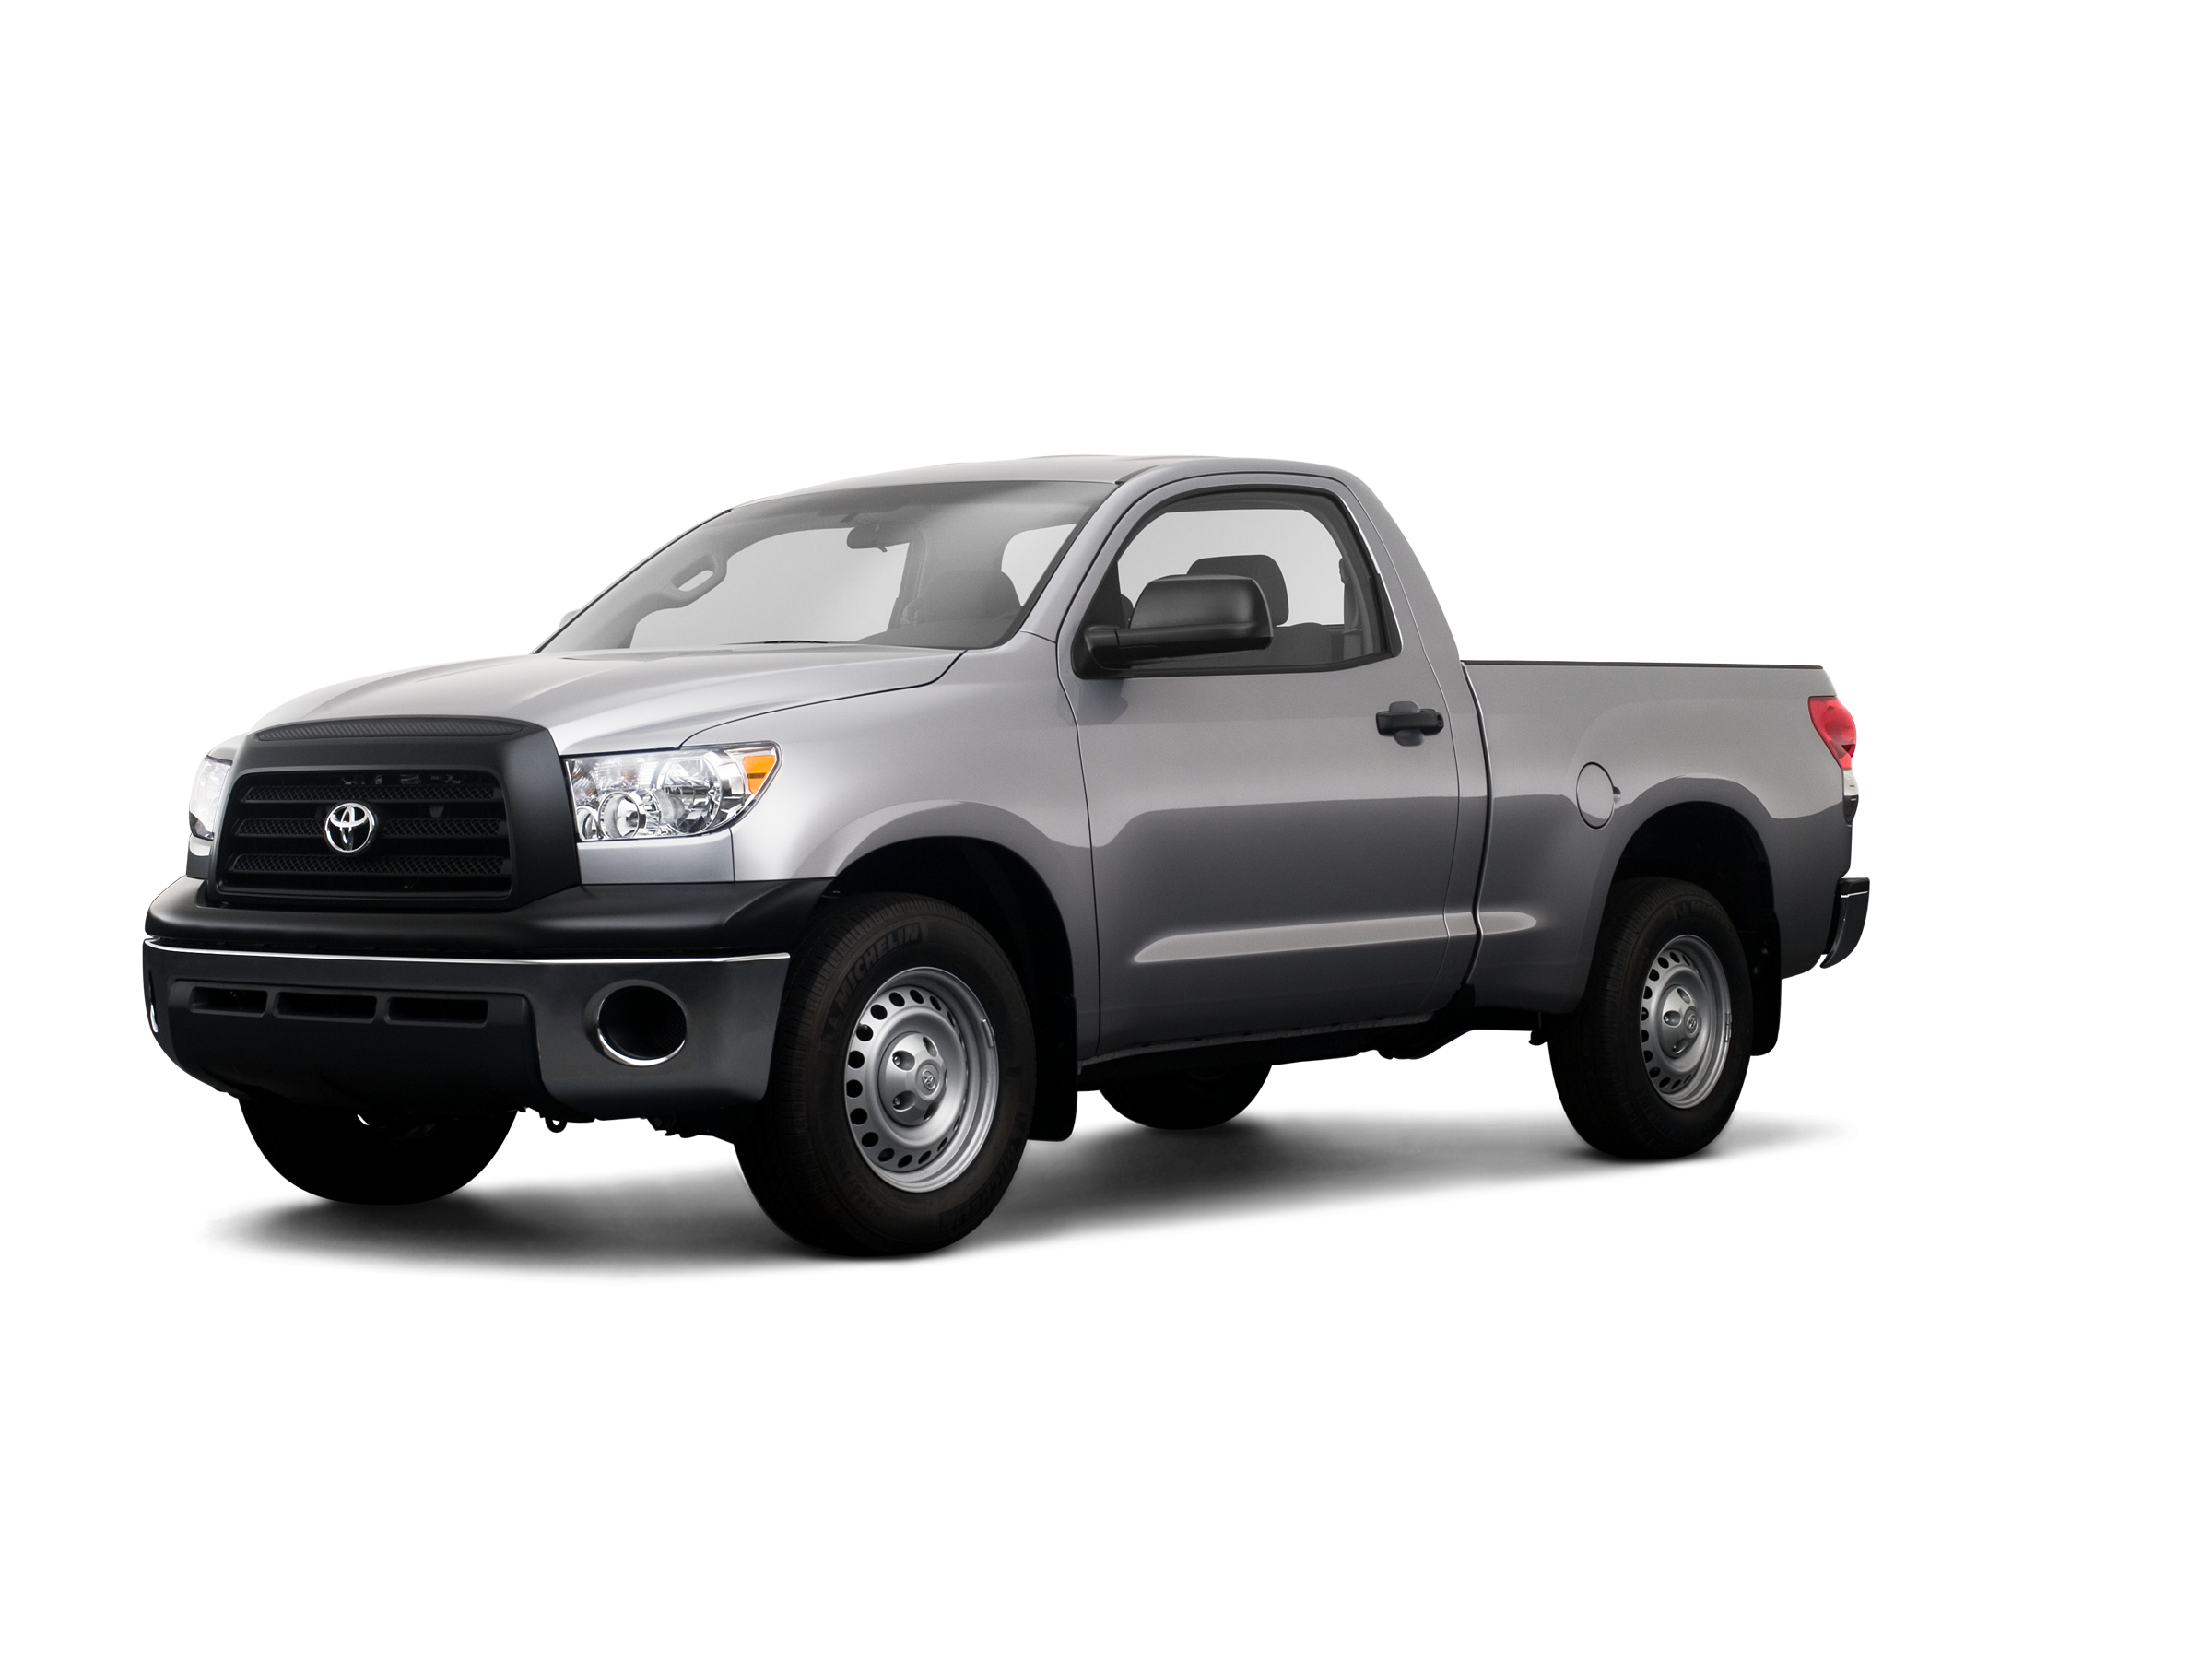 2008 Toyota Tundra Values Cars For Sale Kelley Blue Book